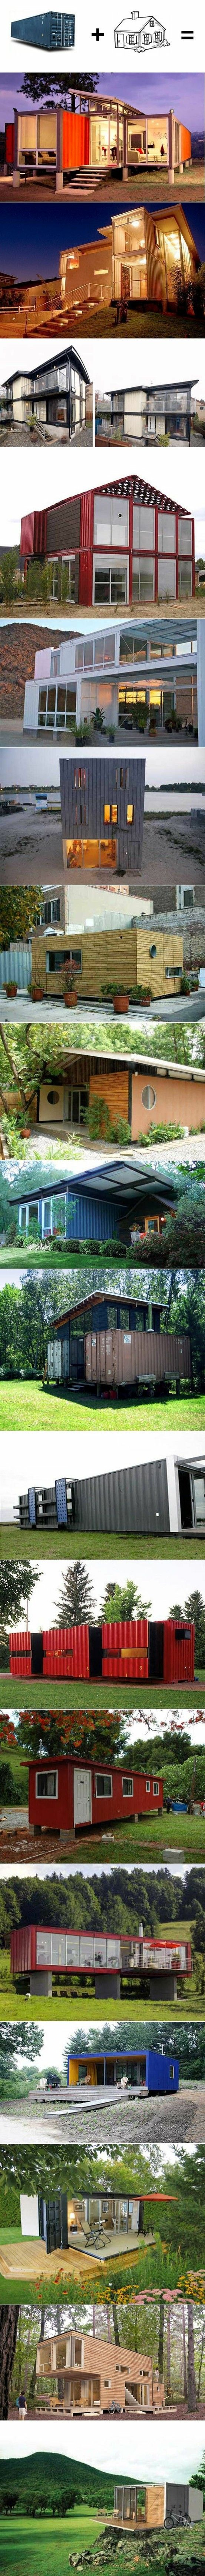 Shipping container homes living for the future earth911 com - Creative Container Homes Chic Cheap I Think This Idea Is So Cool Love The Whole Eco Friendly Thing Cool Idea For A Cabin Somewhere